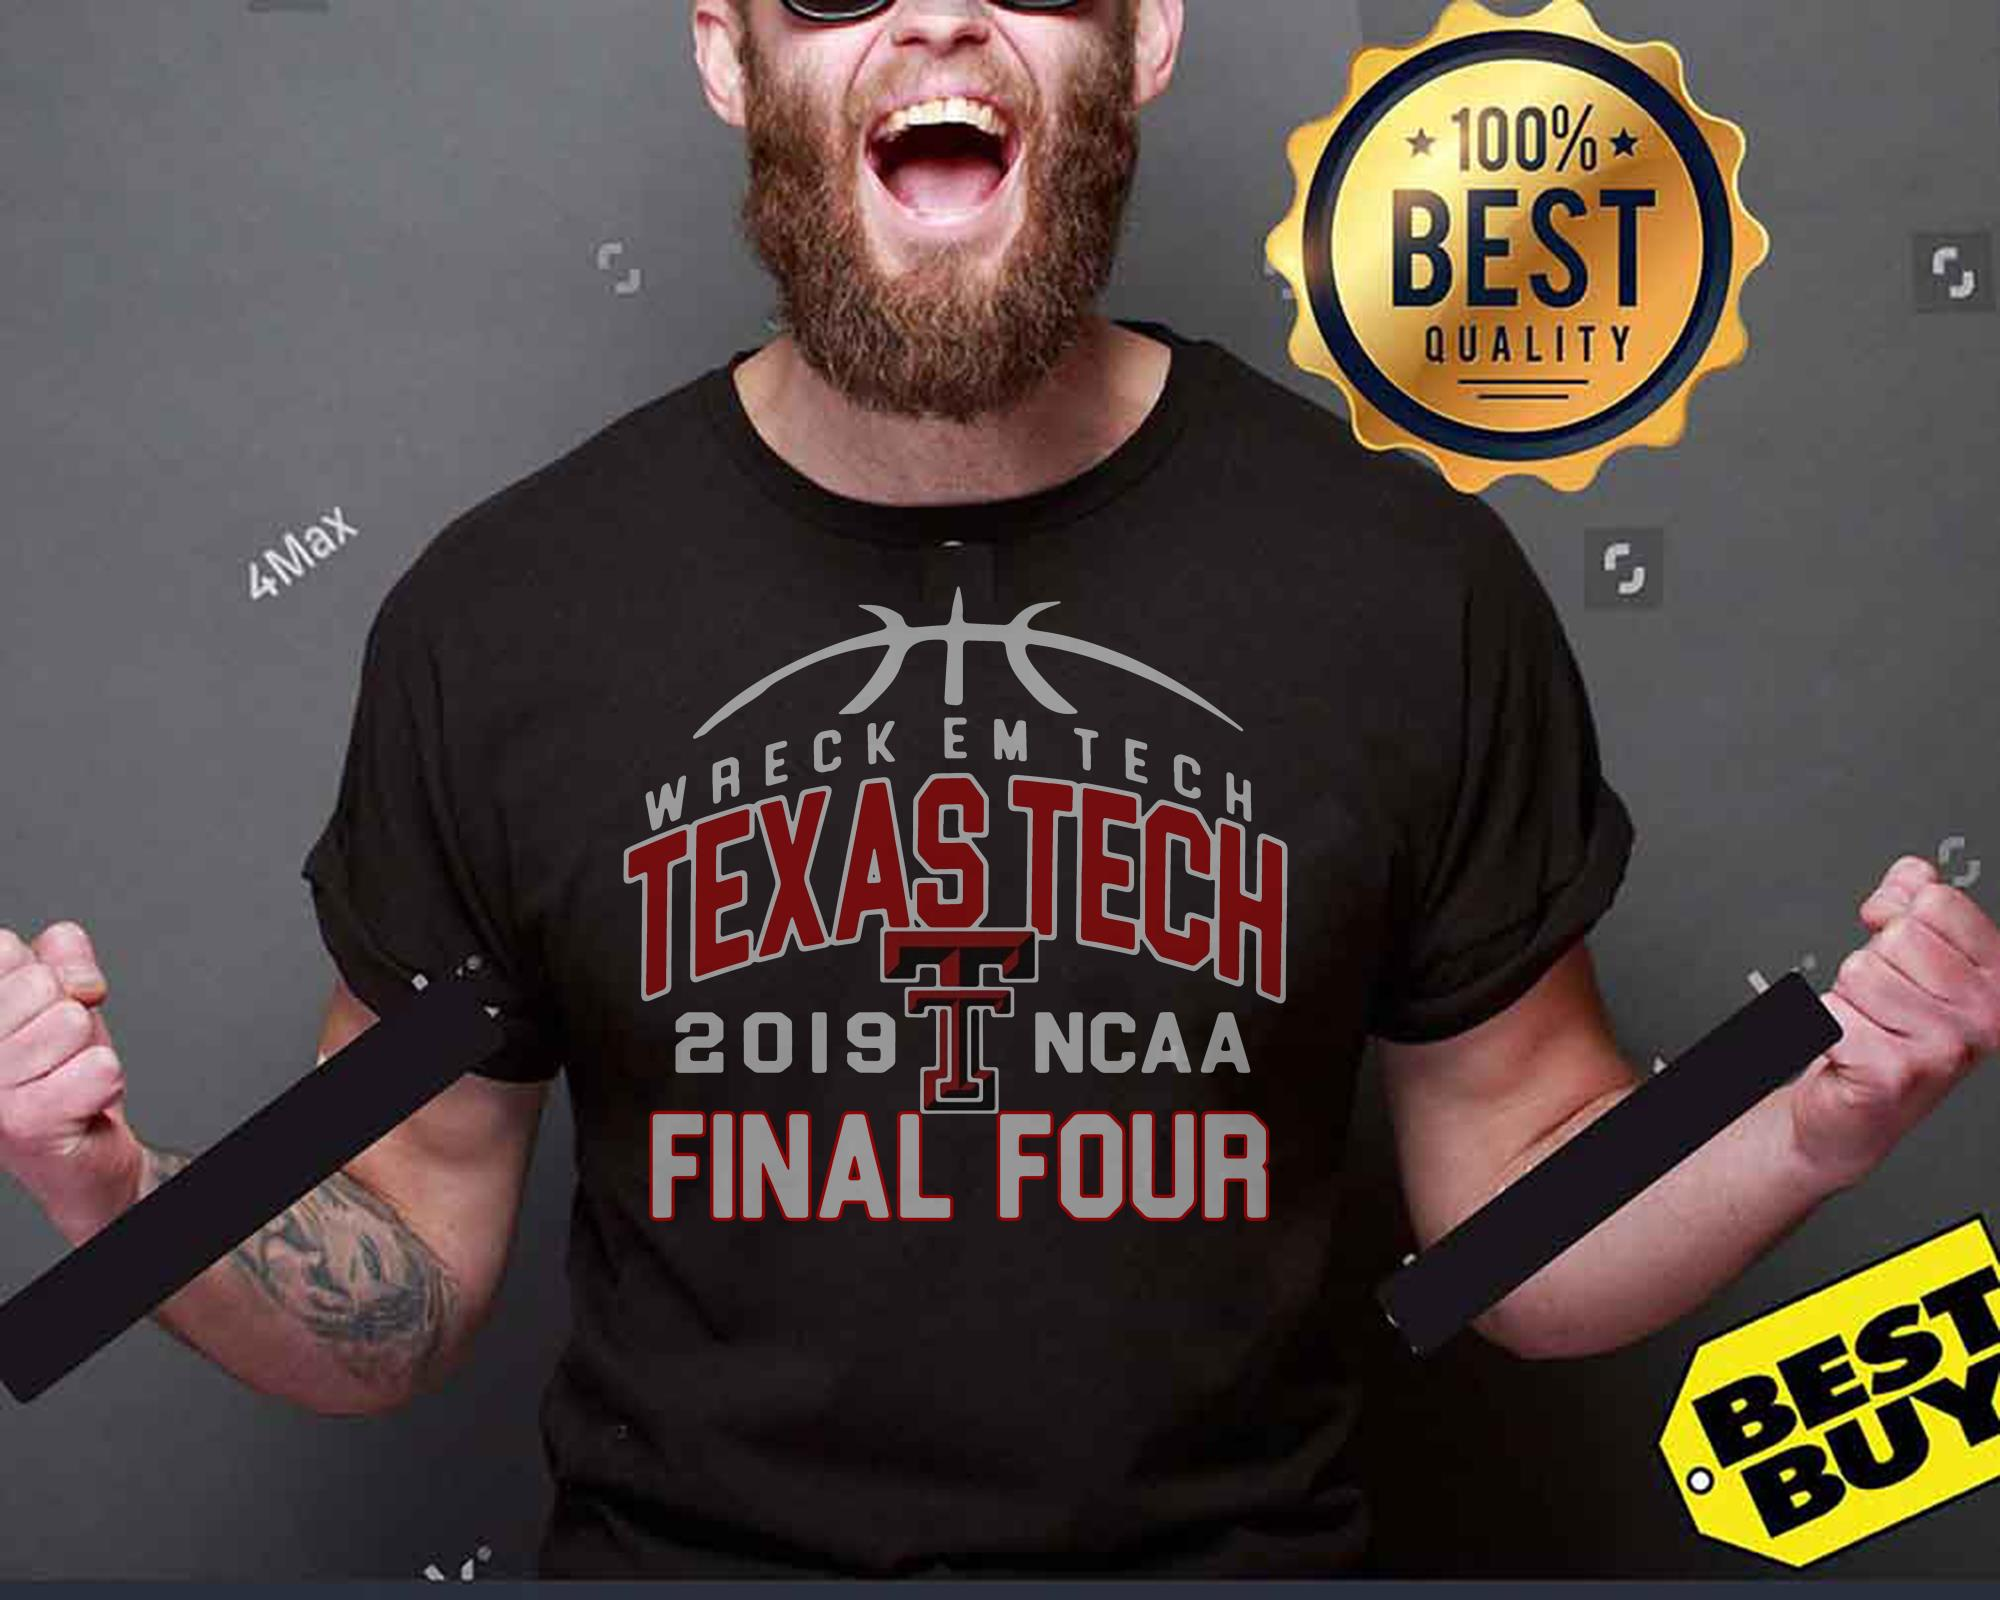 Wreckem Tech Texas Tech 2019 Ncaa Final Four tank top